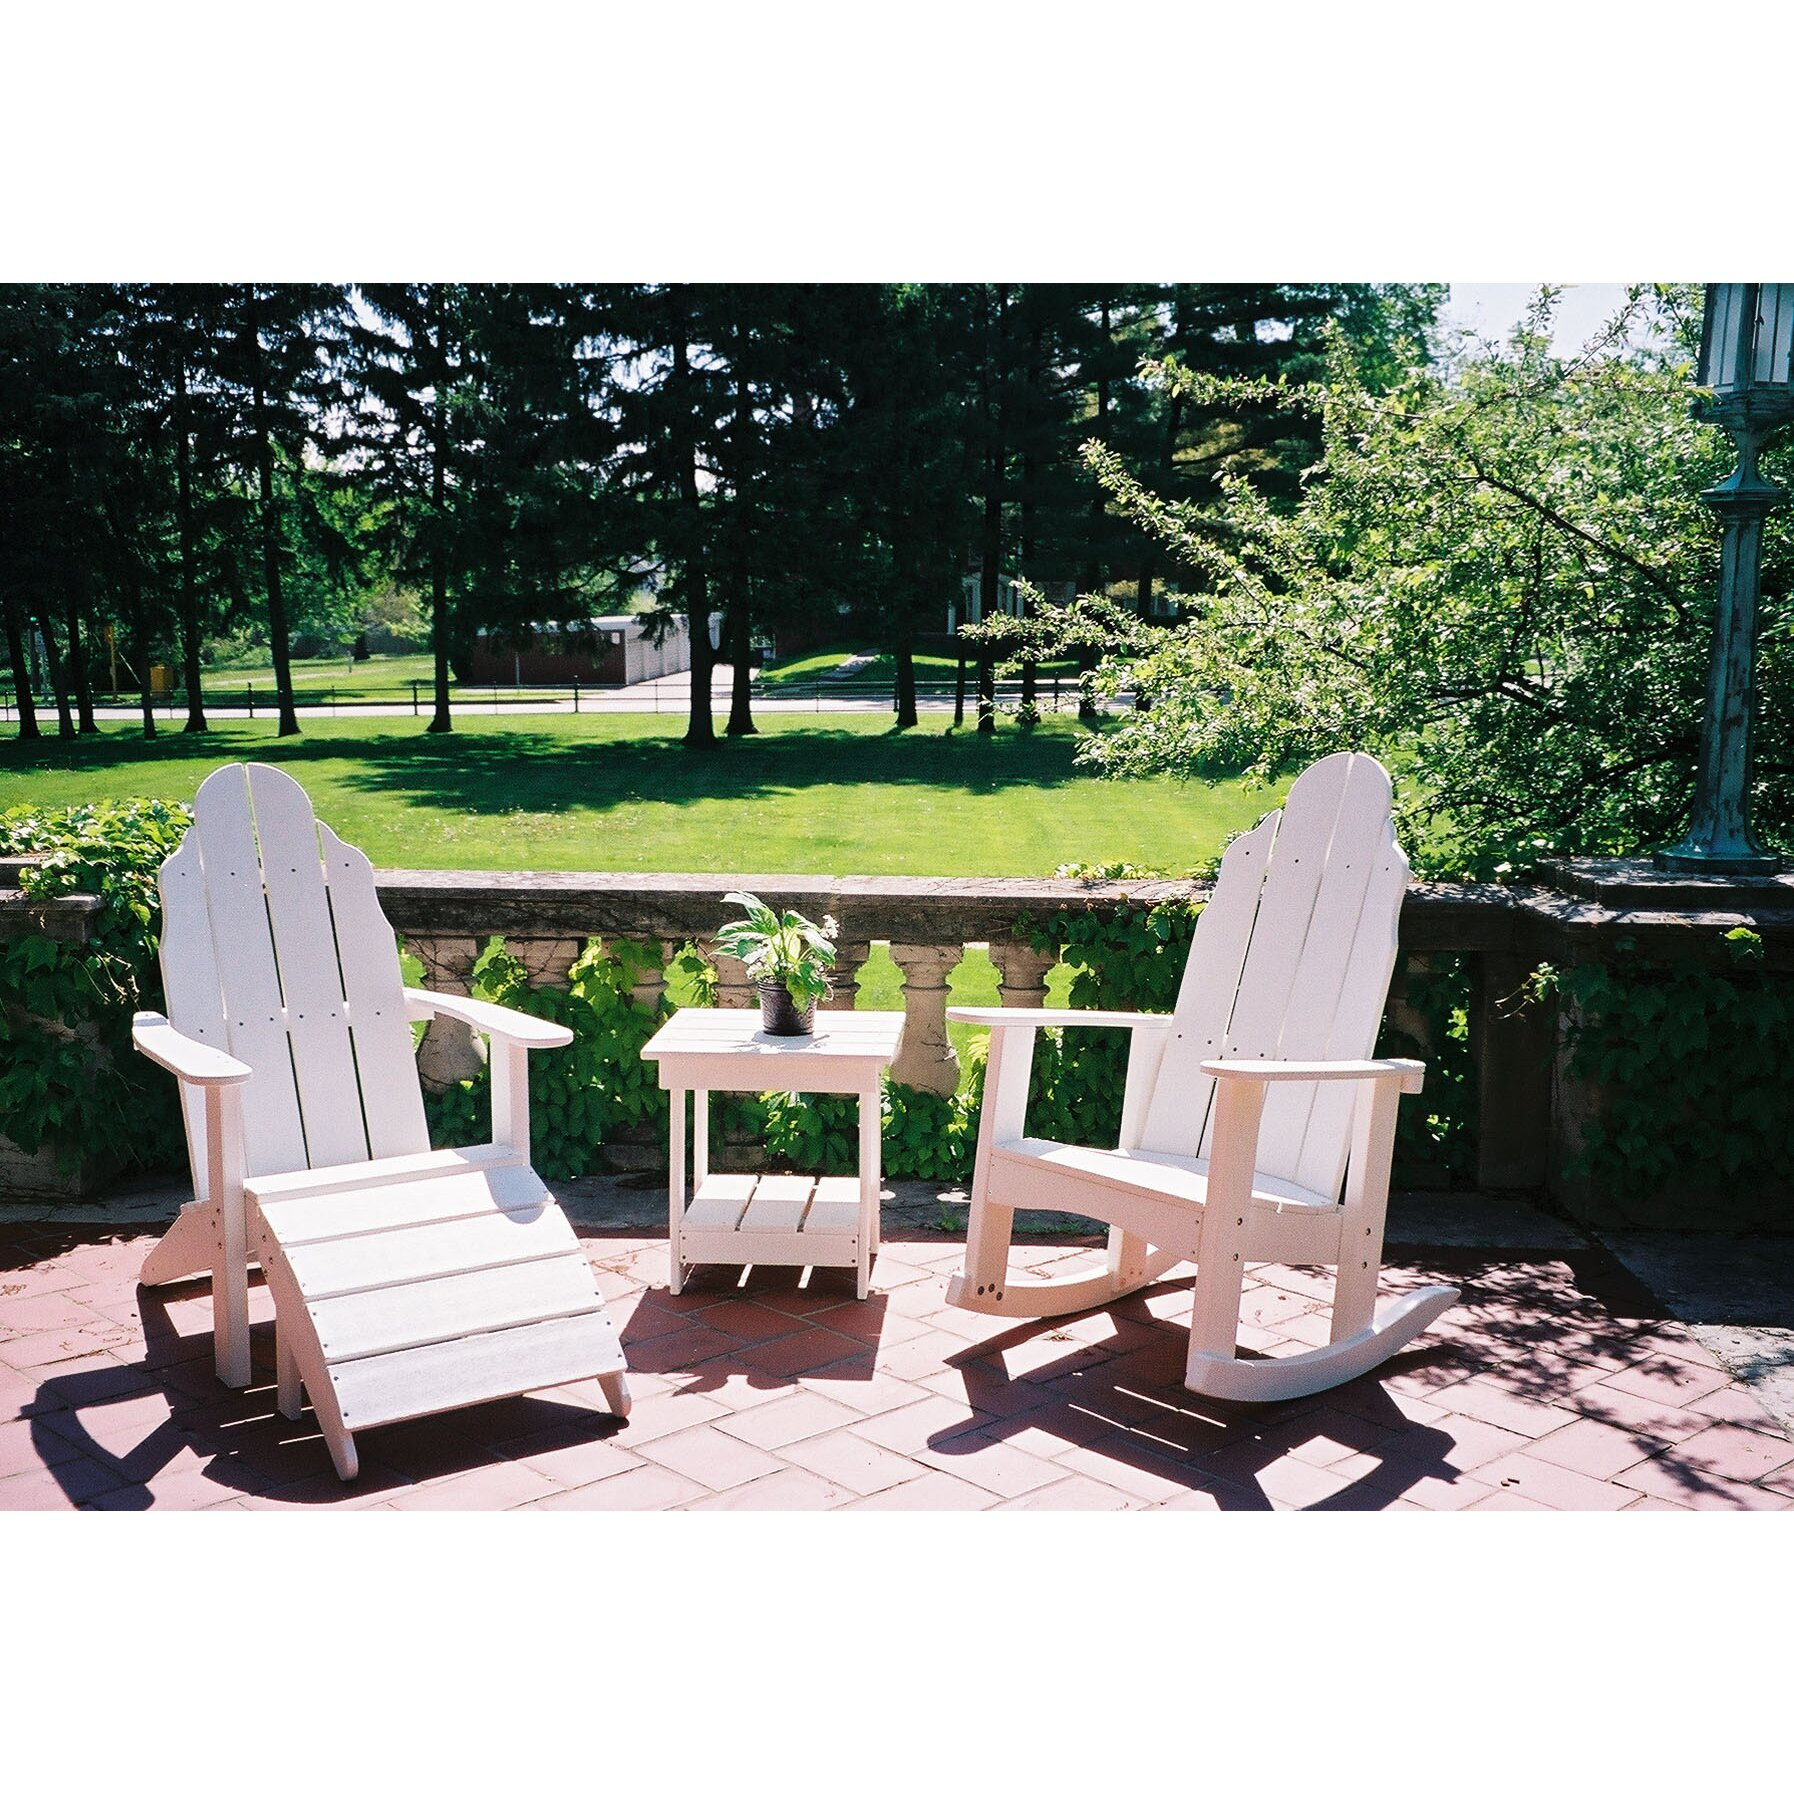 Tailwind Furniture Traditional Rocker Adirondack Chair